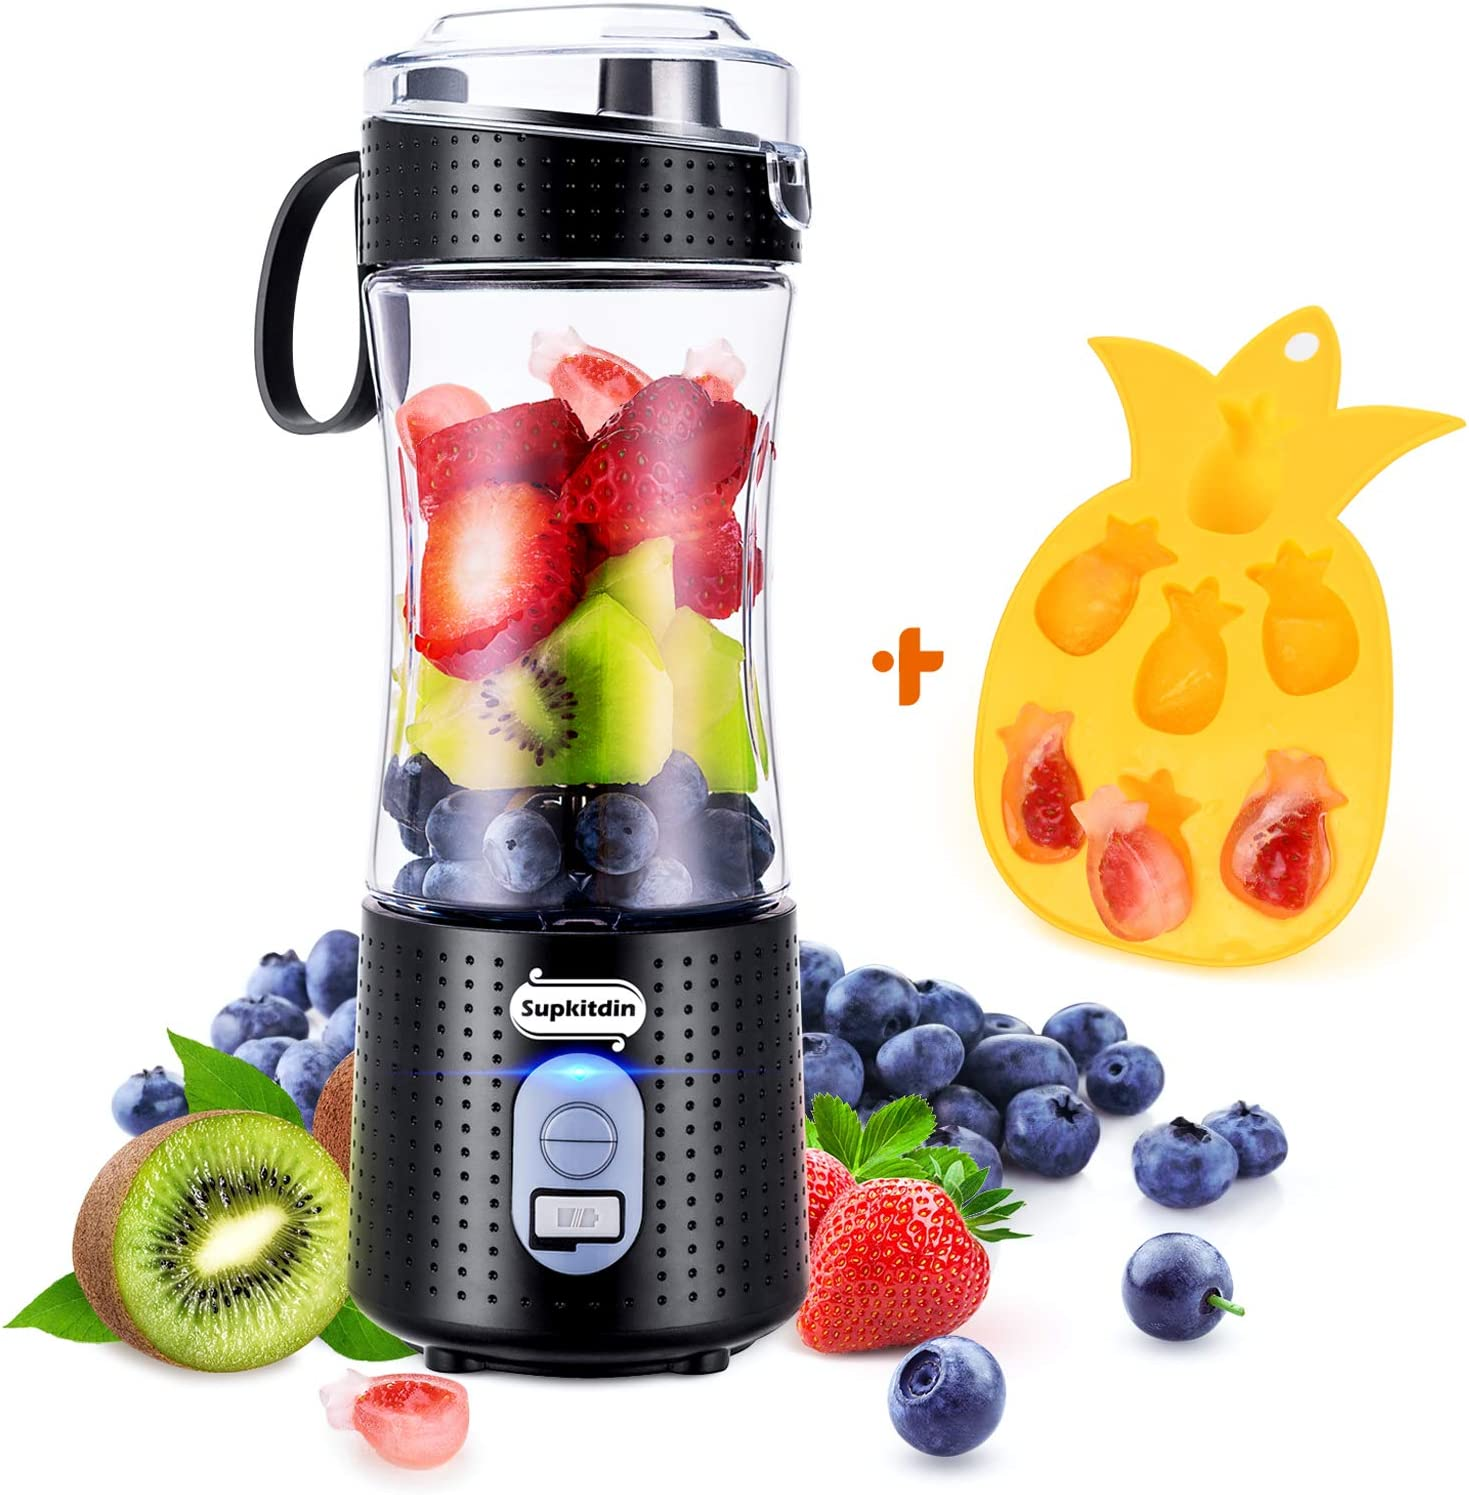 Supkitdin Portable Blender, Personal Mixer Fruit Rechargeable with USB, Mini Blender for Smoothie, Fruit Juice, Milk Shakes, 380ml, Six 3D Blades for Great Mixing (Black)